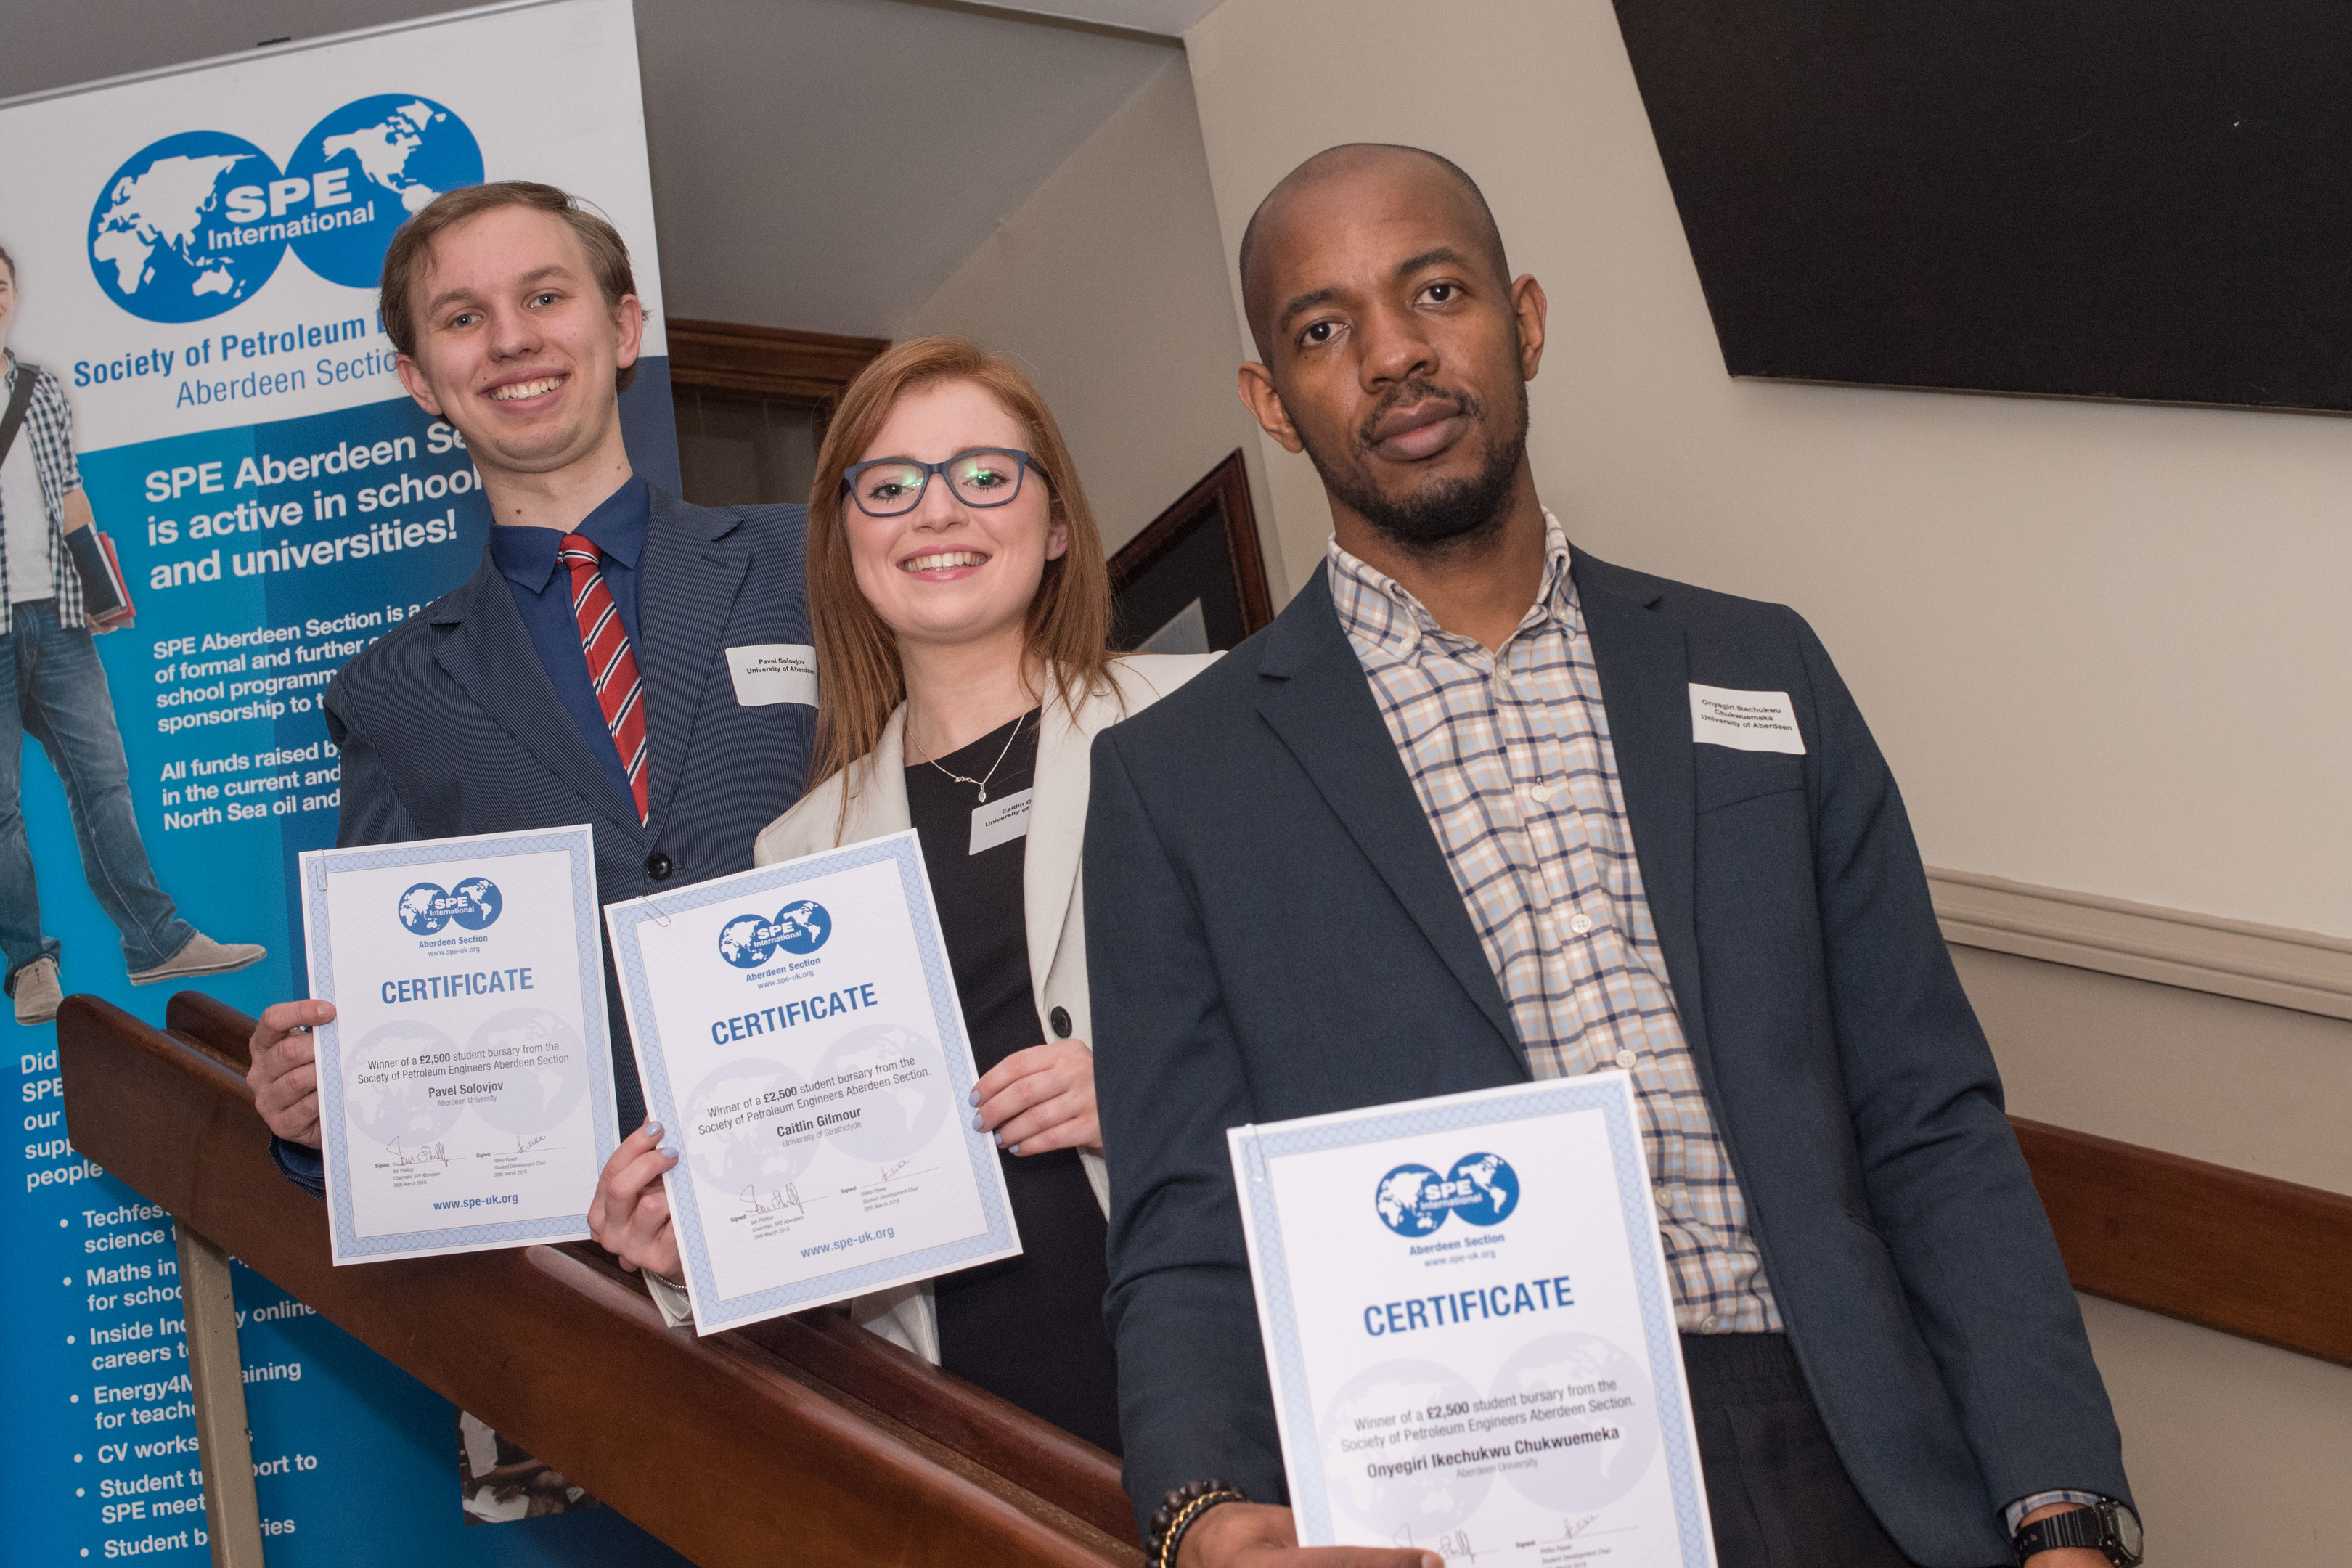 Aberdeen,  Scotland, Wednesday 28th March 2018  SPE Aberdeen Bursaries Presentation at Douglas Hotel, Aberdeen.  Pictured is: Pavel Solovjov, Caitlin Gilmore, Onyegiri Ikechukwu, recipients of the top bursaries  Picture by Michal Wachucik / Abermedia